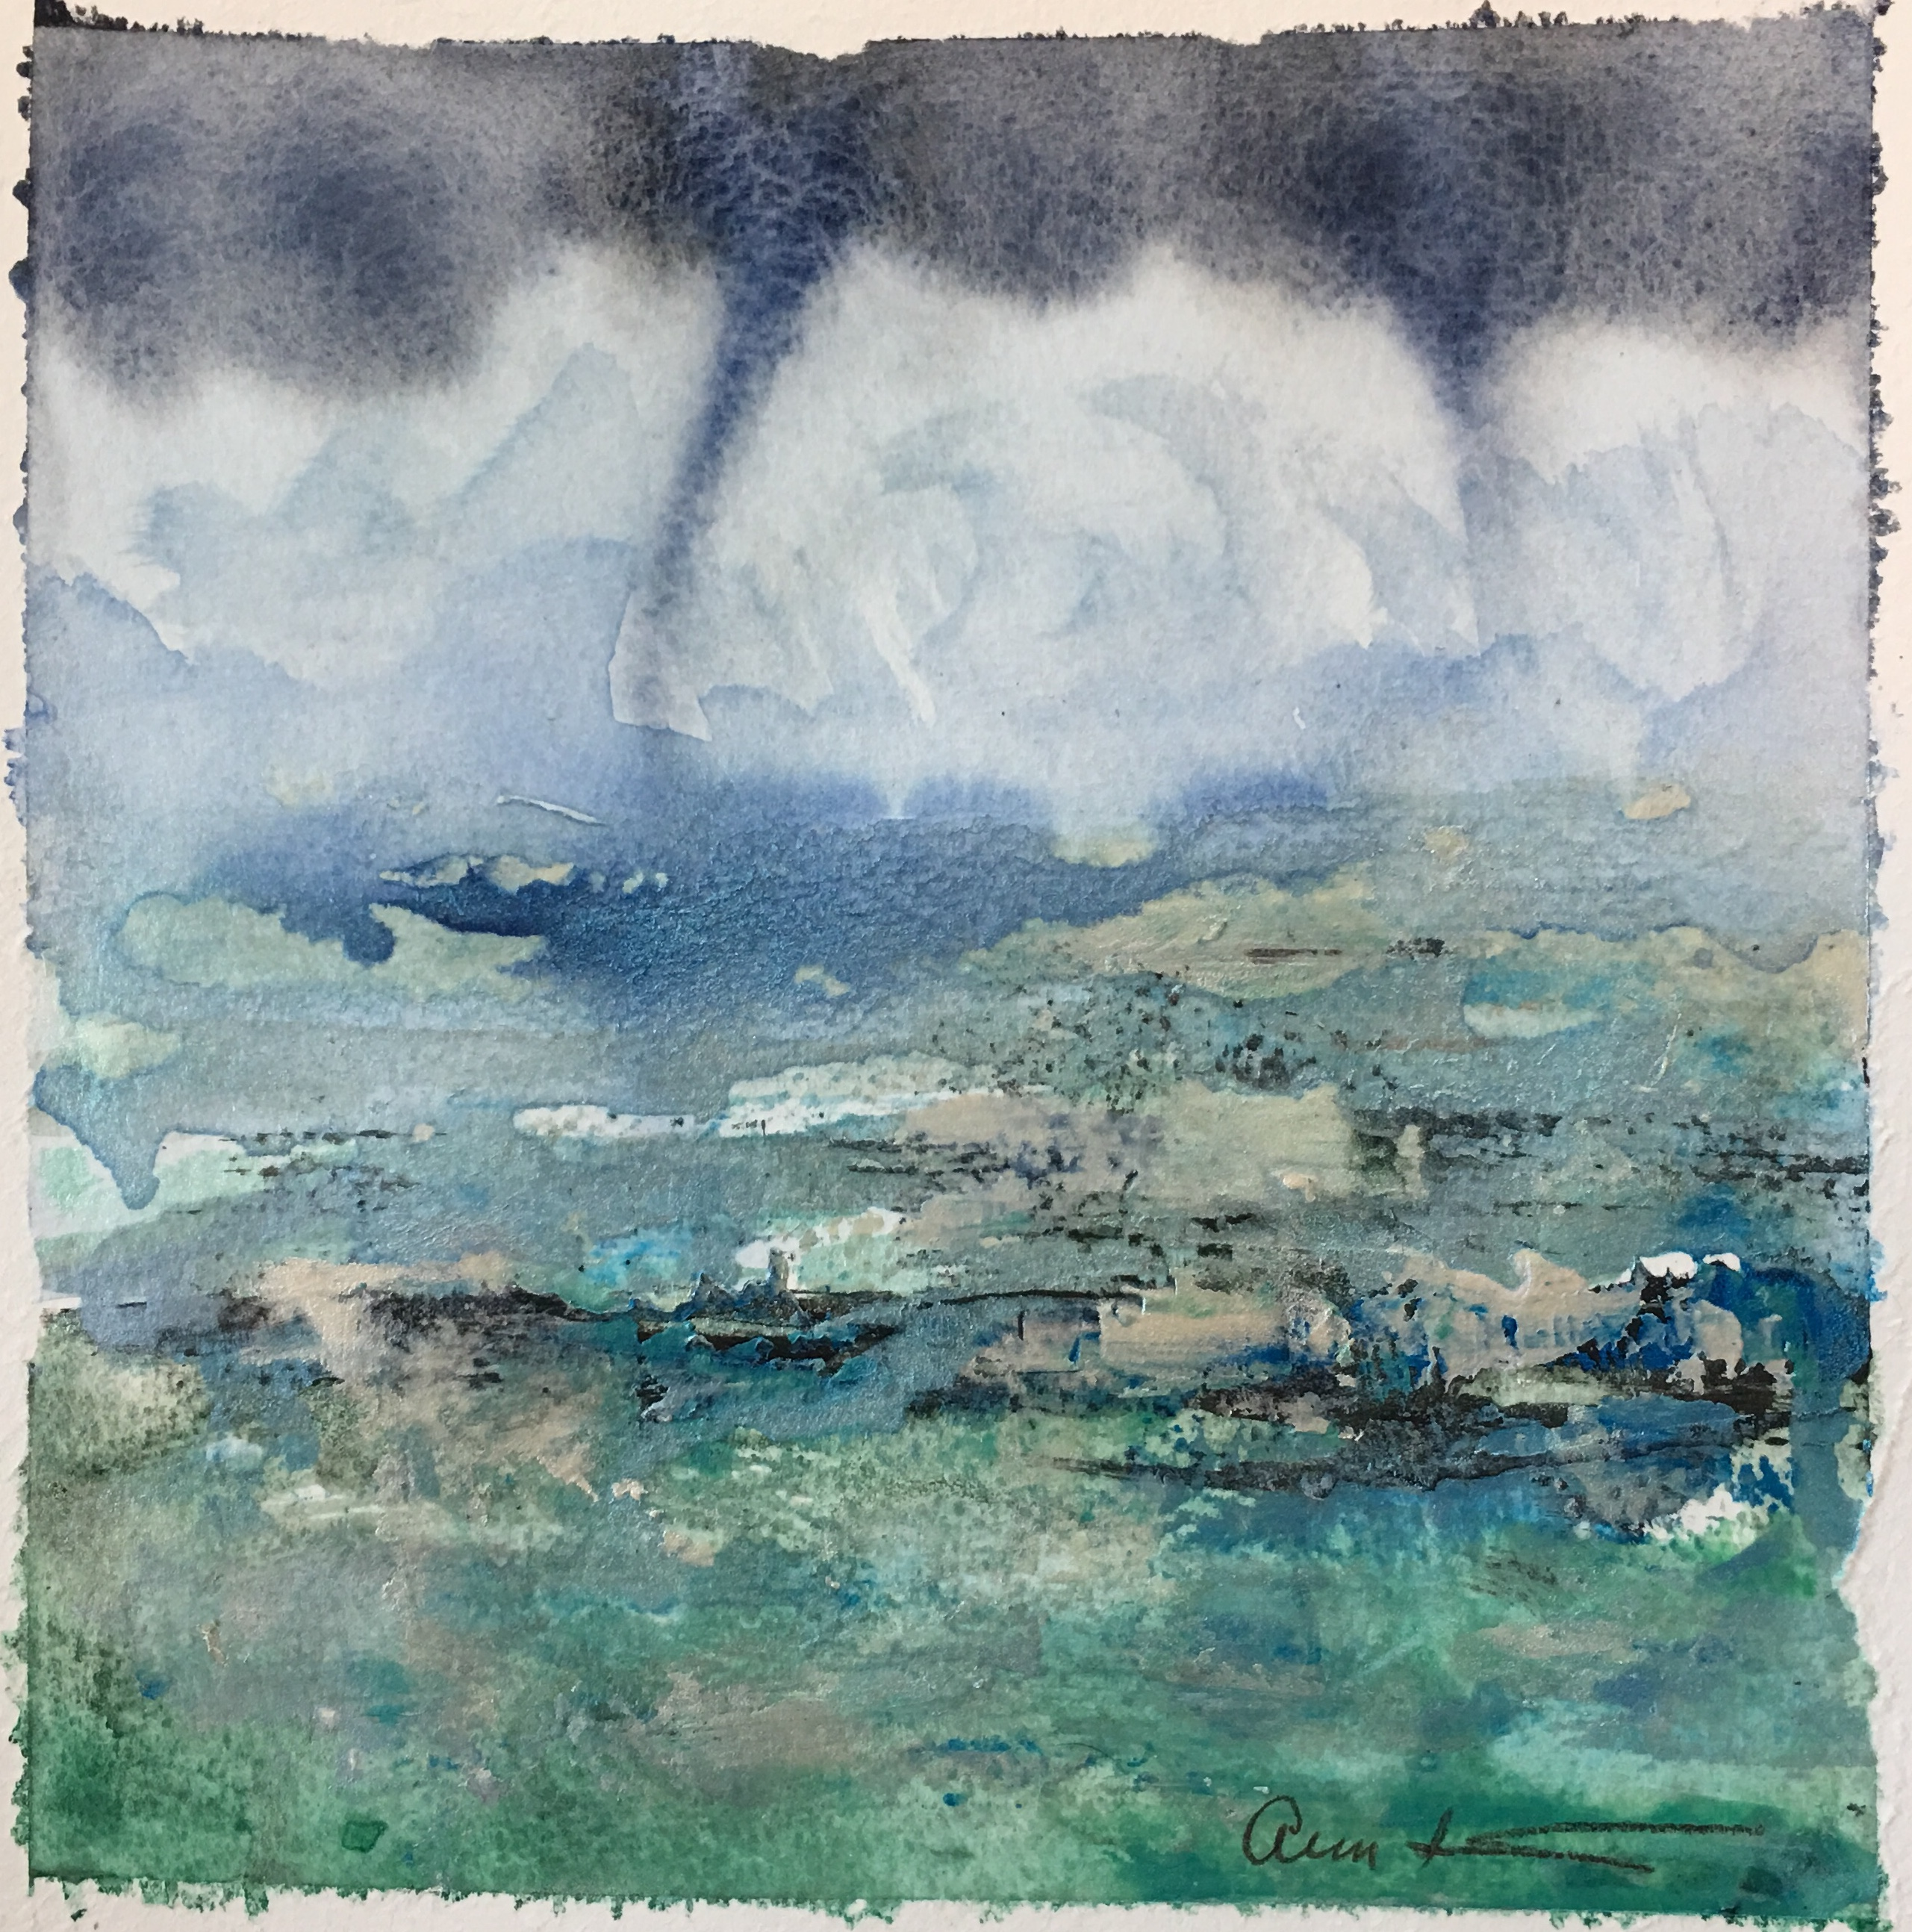 Dueling Funnel Clouds by Ann Stretton